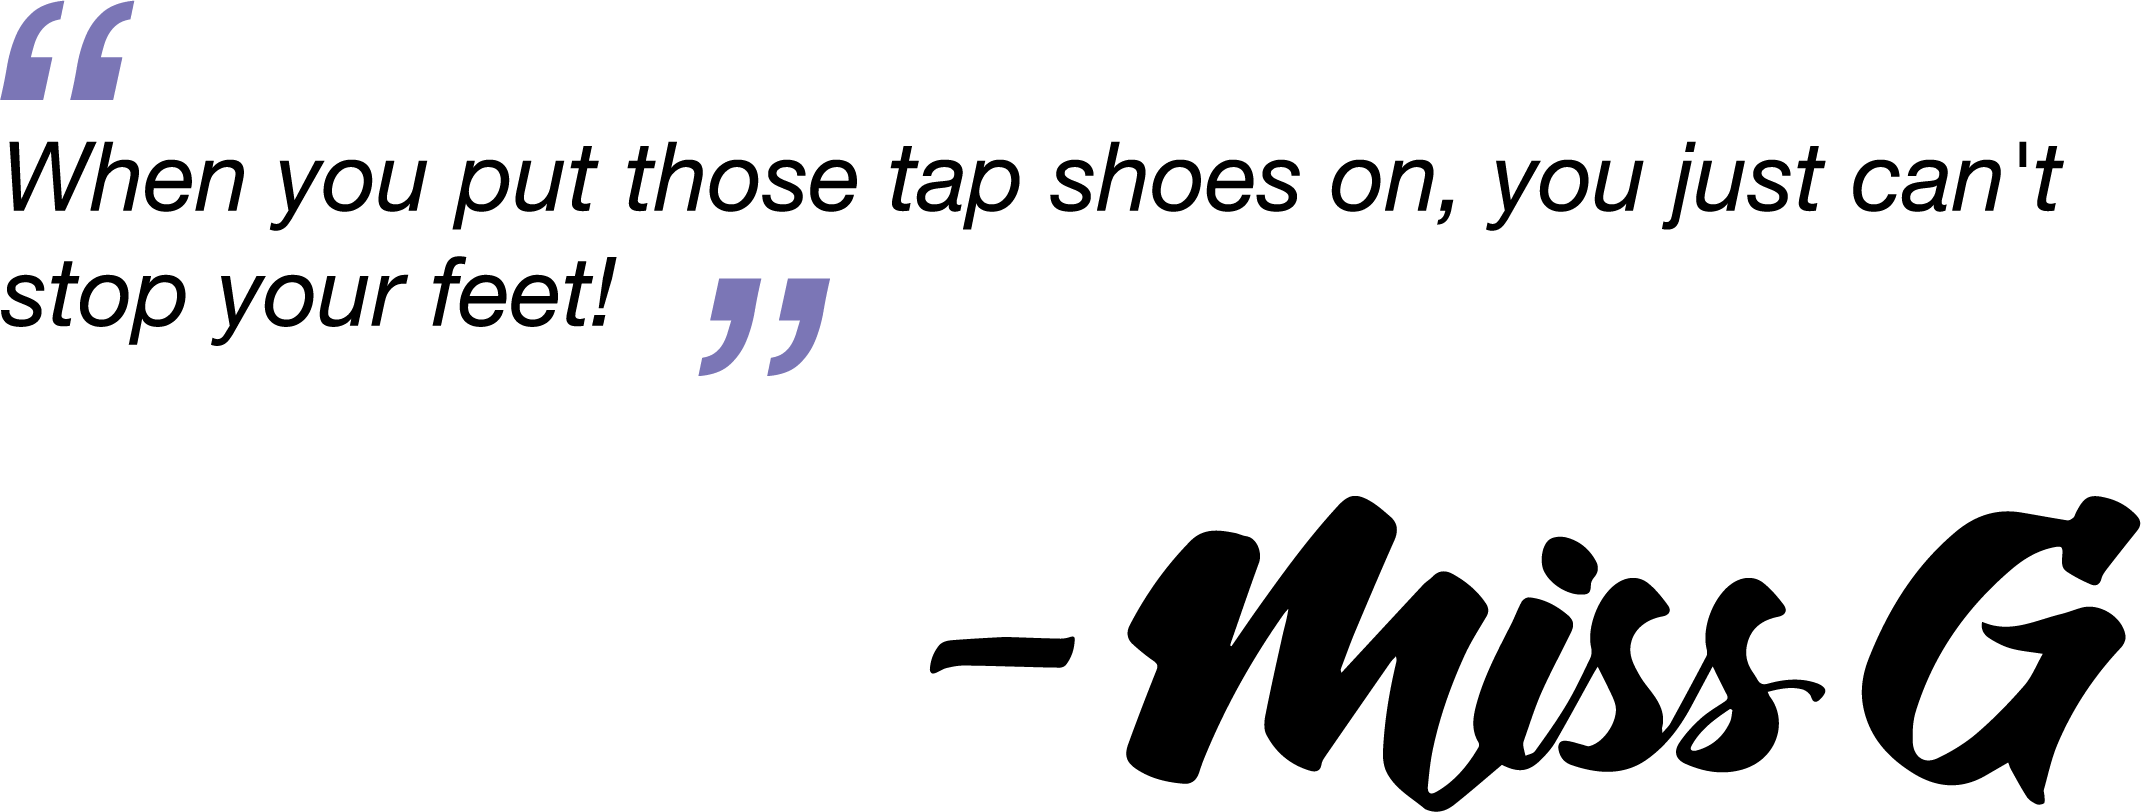 Tap-quote